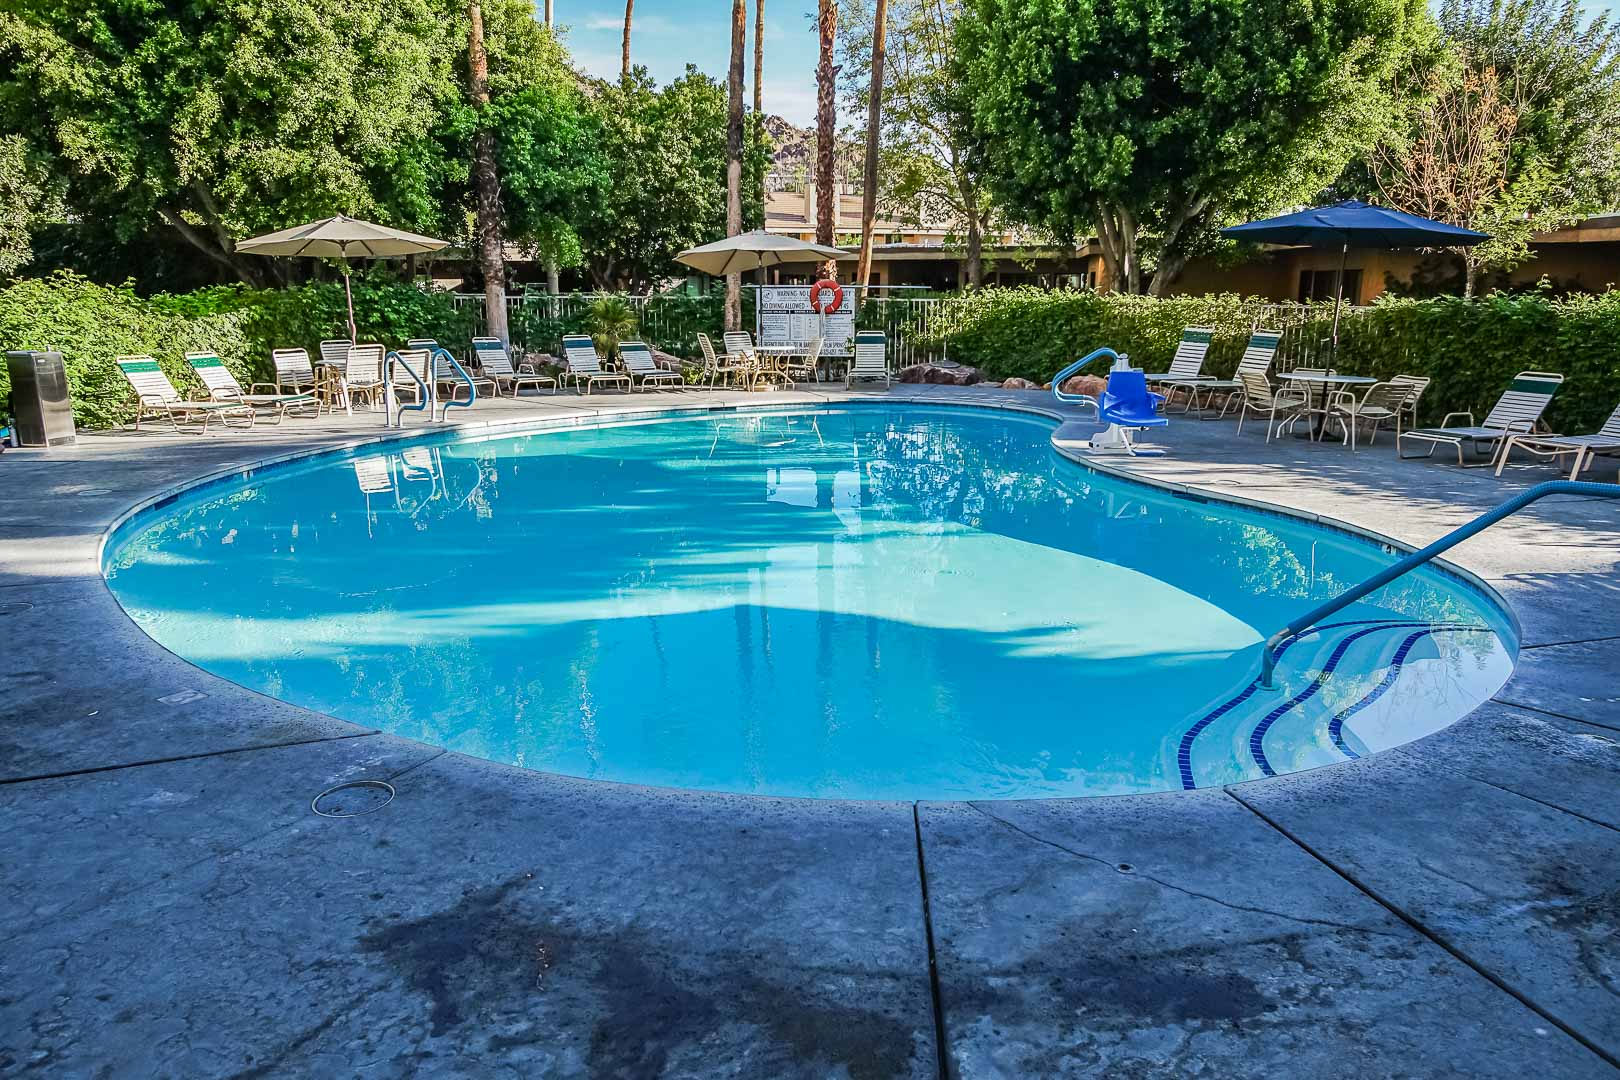 A peaceful outdoor swimming pool at VRI's Palm Springs Tennis Club in California.